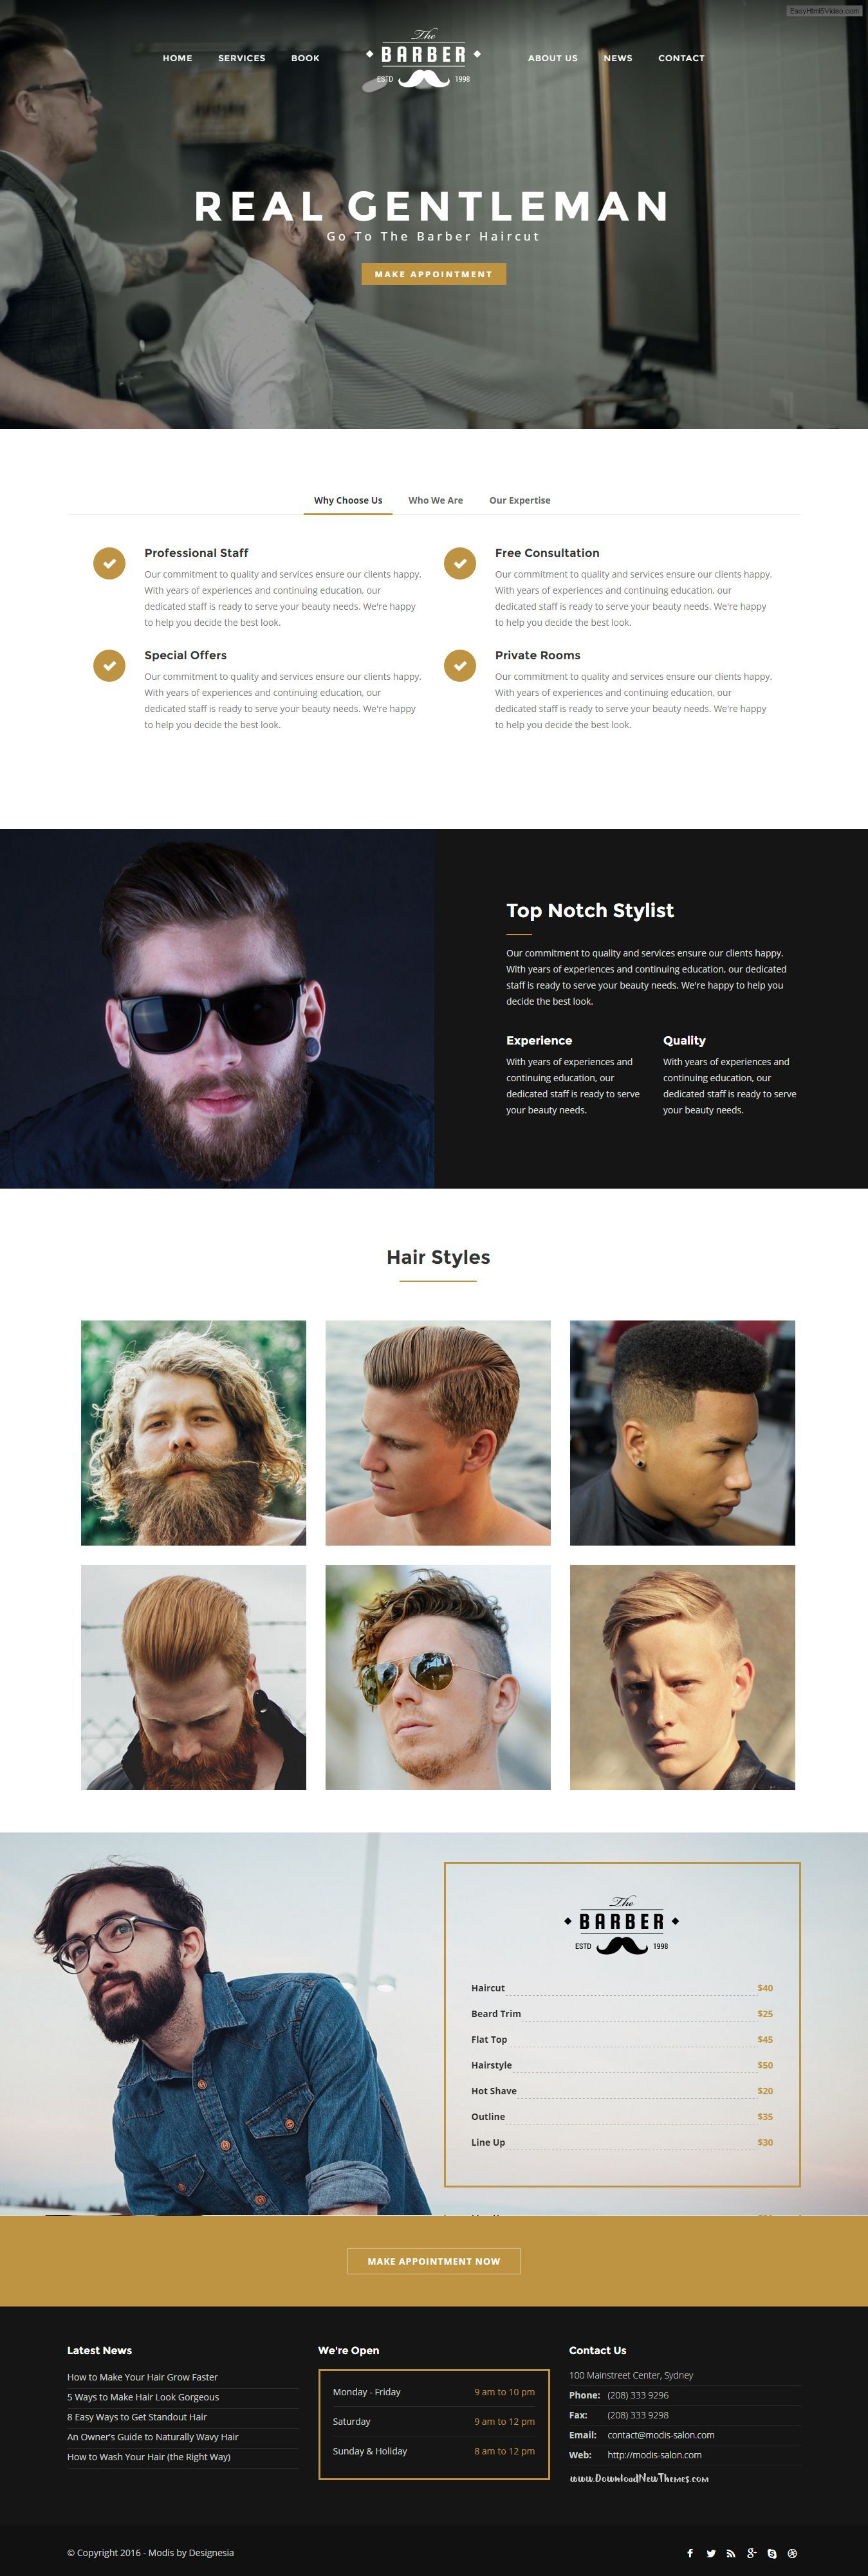 modis salon spa barber website template massage spa modis is responsive bootstrap html 5 website template build latest trends perfectly suited for